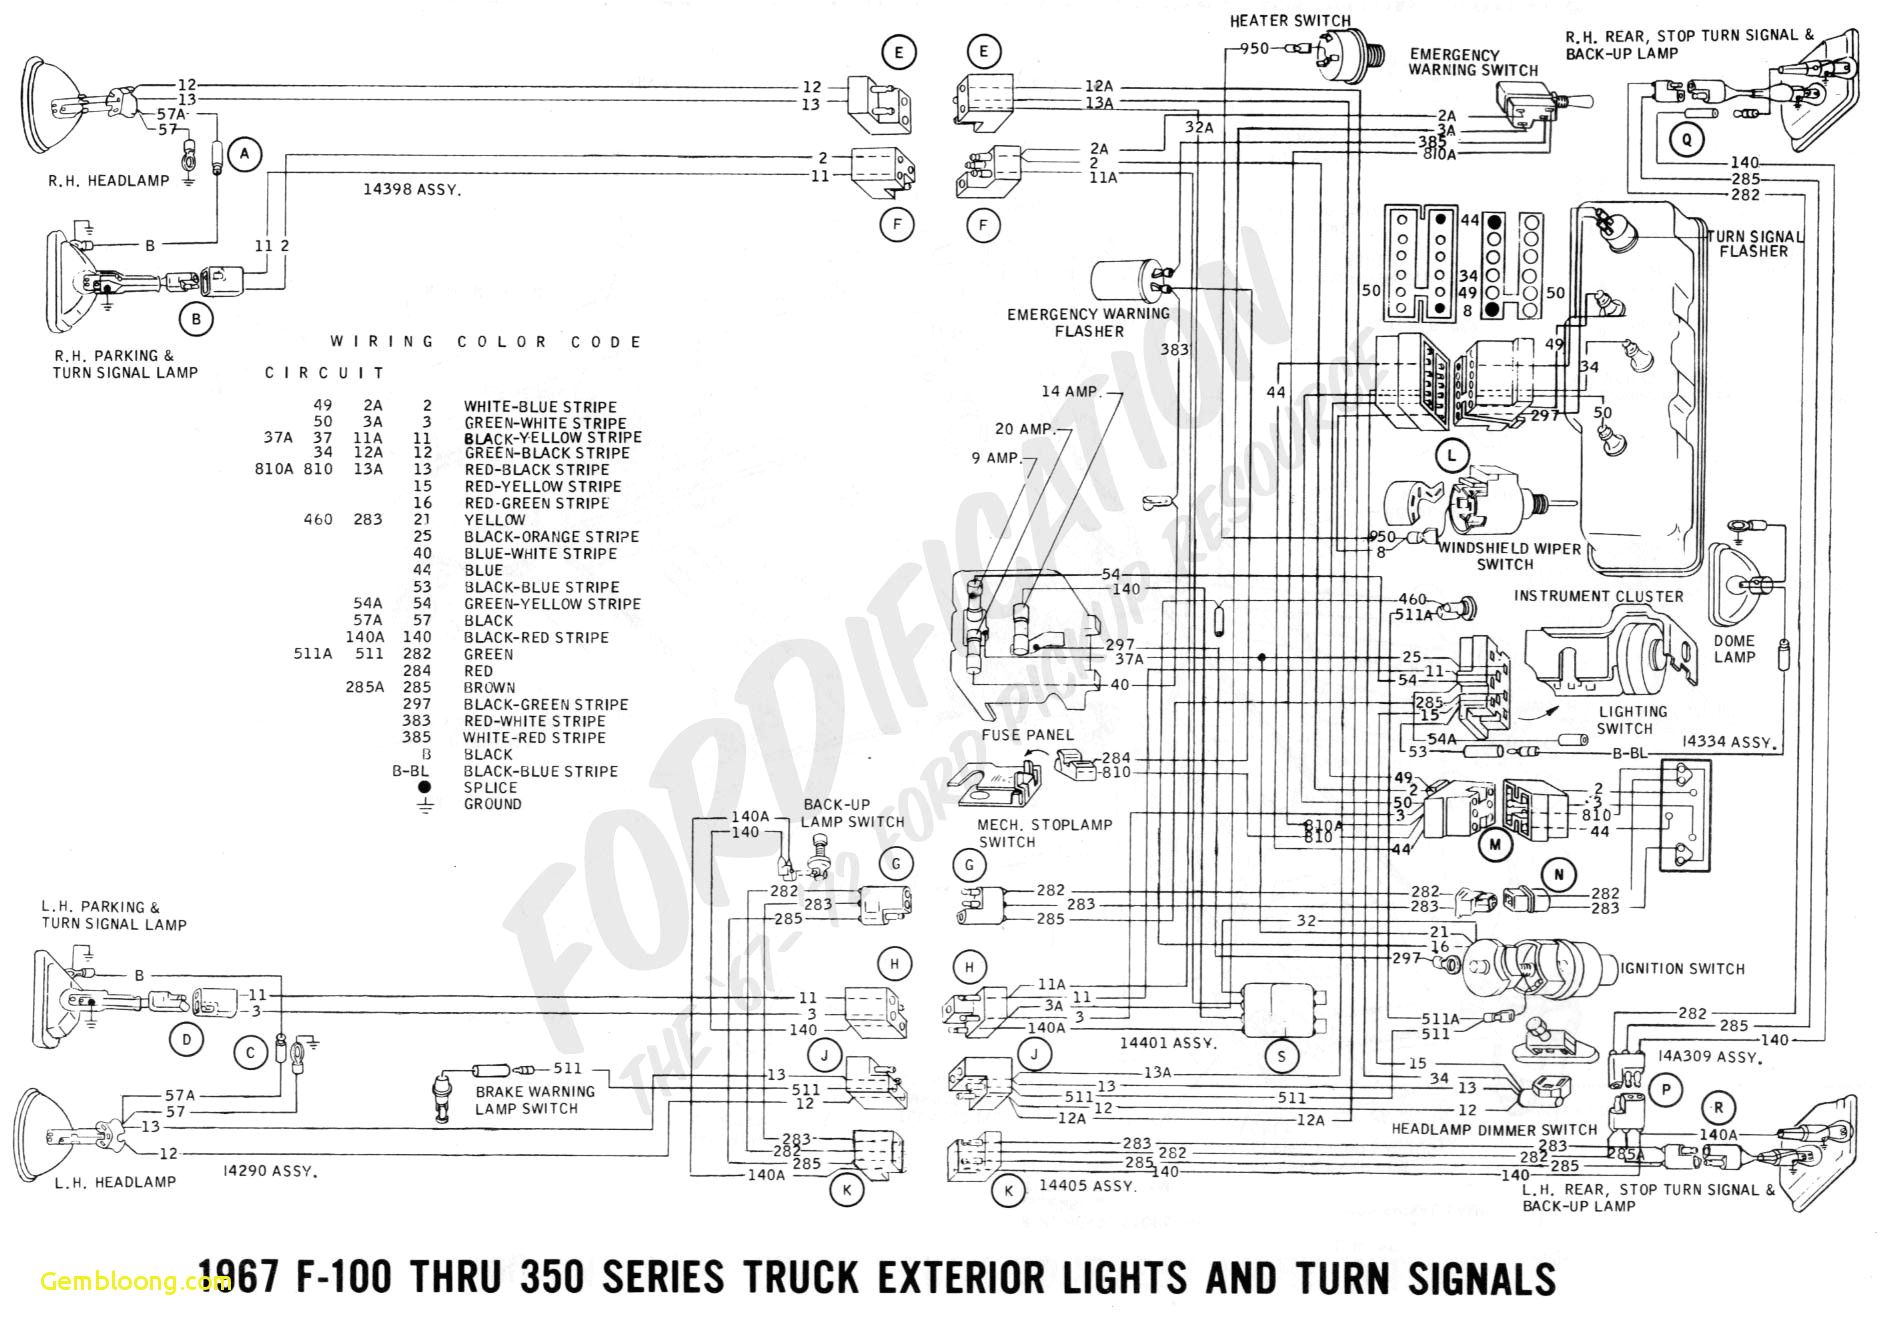 download ford trucks wiring diagrams ford f150 wiring diagrams best rh cafesmom com